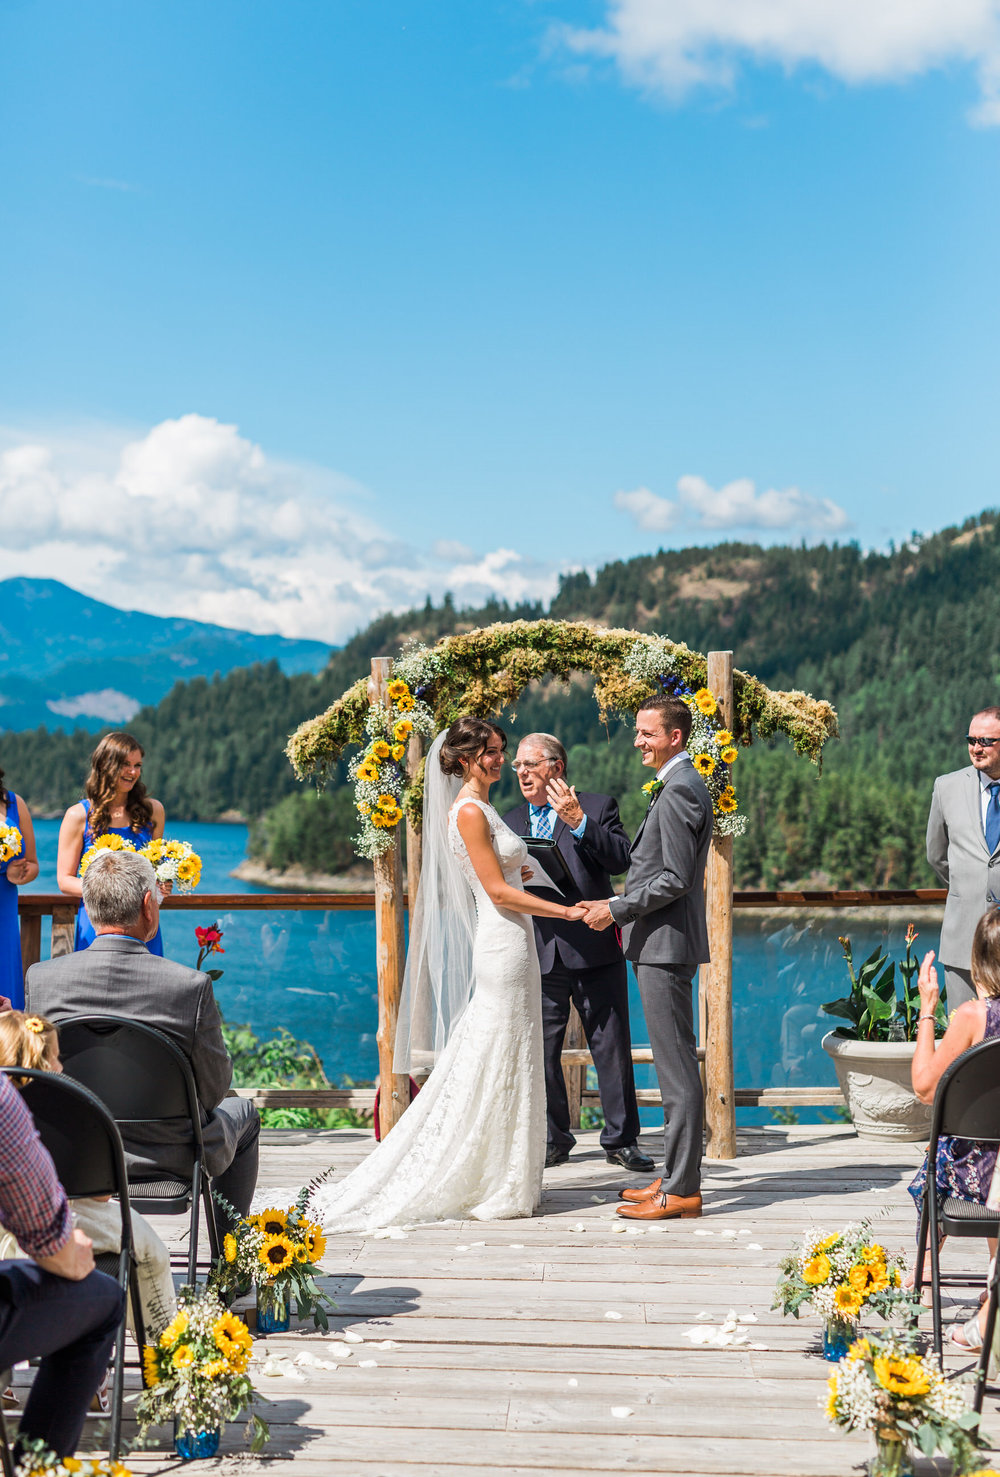 West Coast Wilderness Lodge Wedding Photos - Vancouver Wedding Photographer & Videographer - Sunshine Coast Wedding Photos - Sunshine Coast Wedding Photographer - Jennifer Picard Photography - IMG_8090.jpg